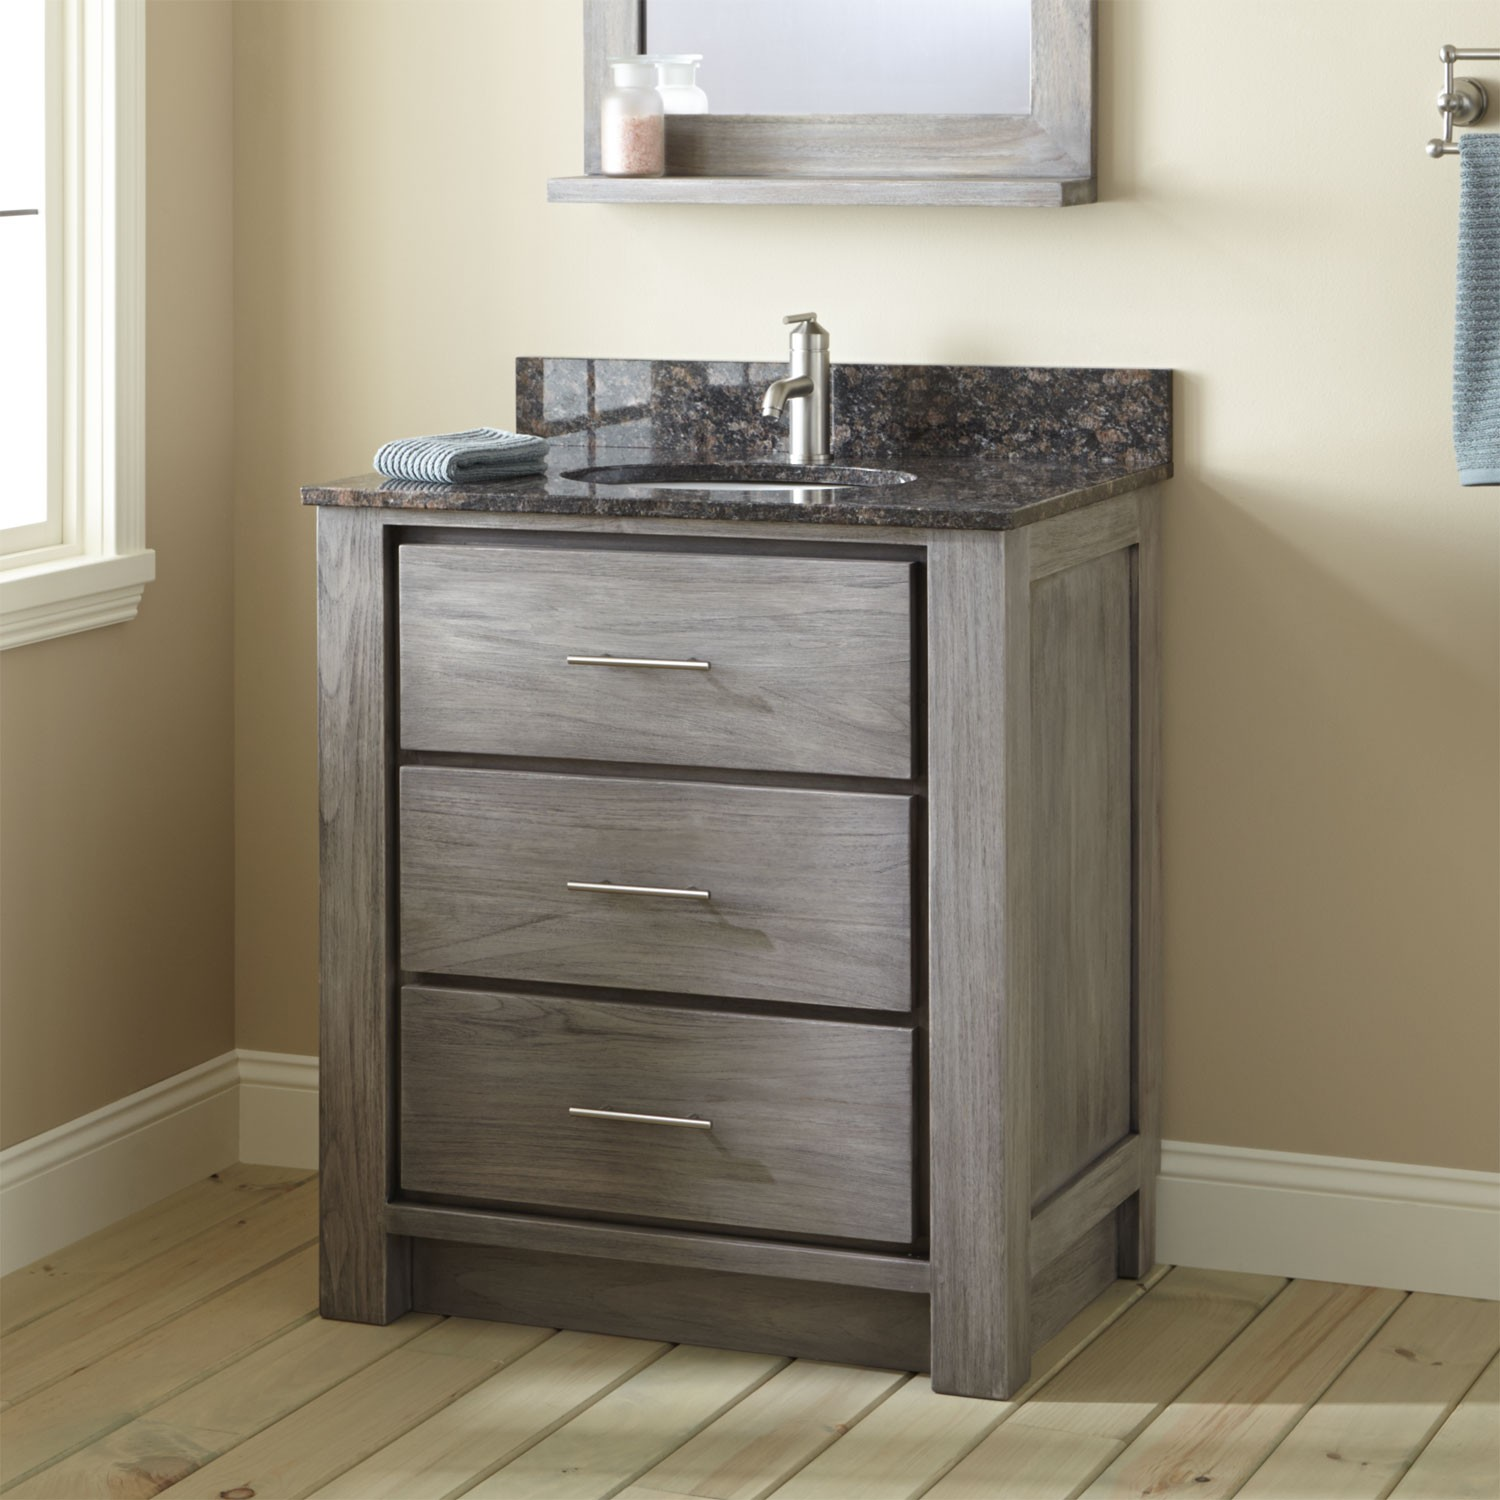 Rustic small bathroom vanities picture design for Bathroom cabinets small spaces